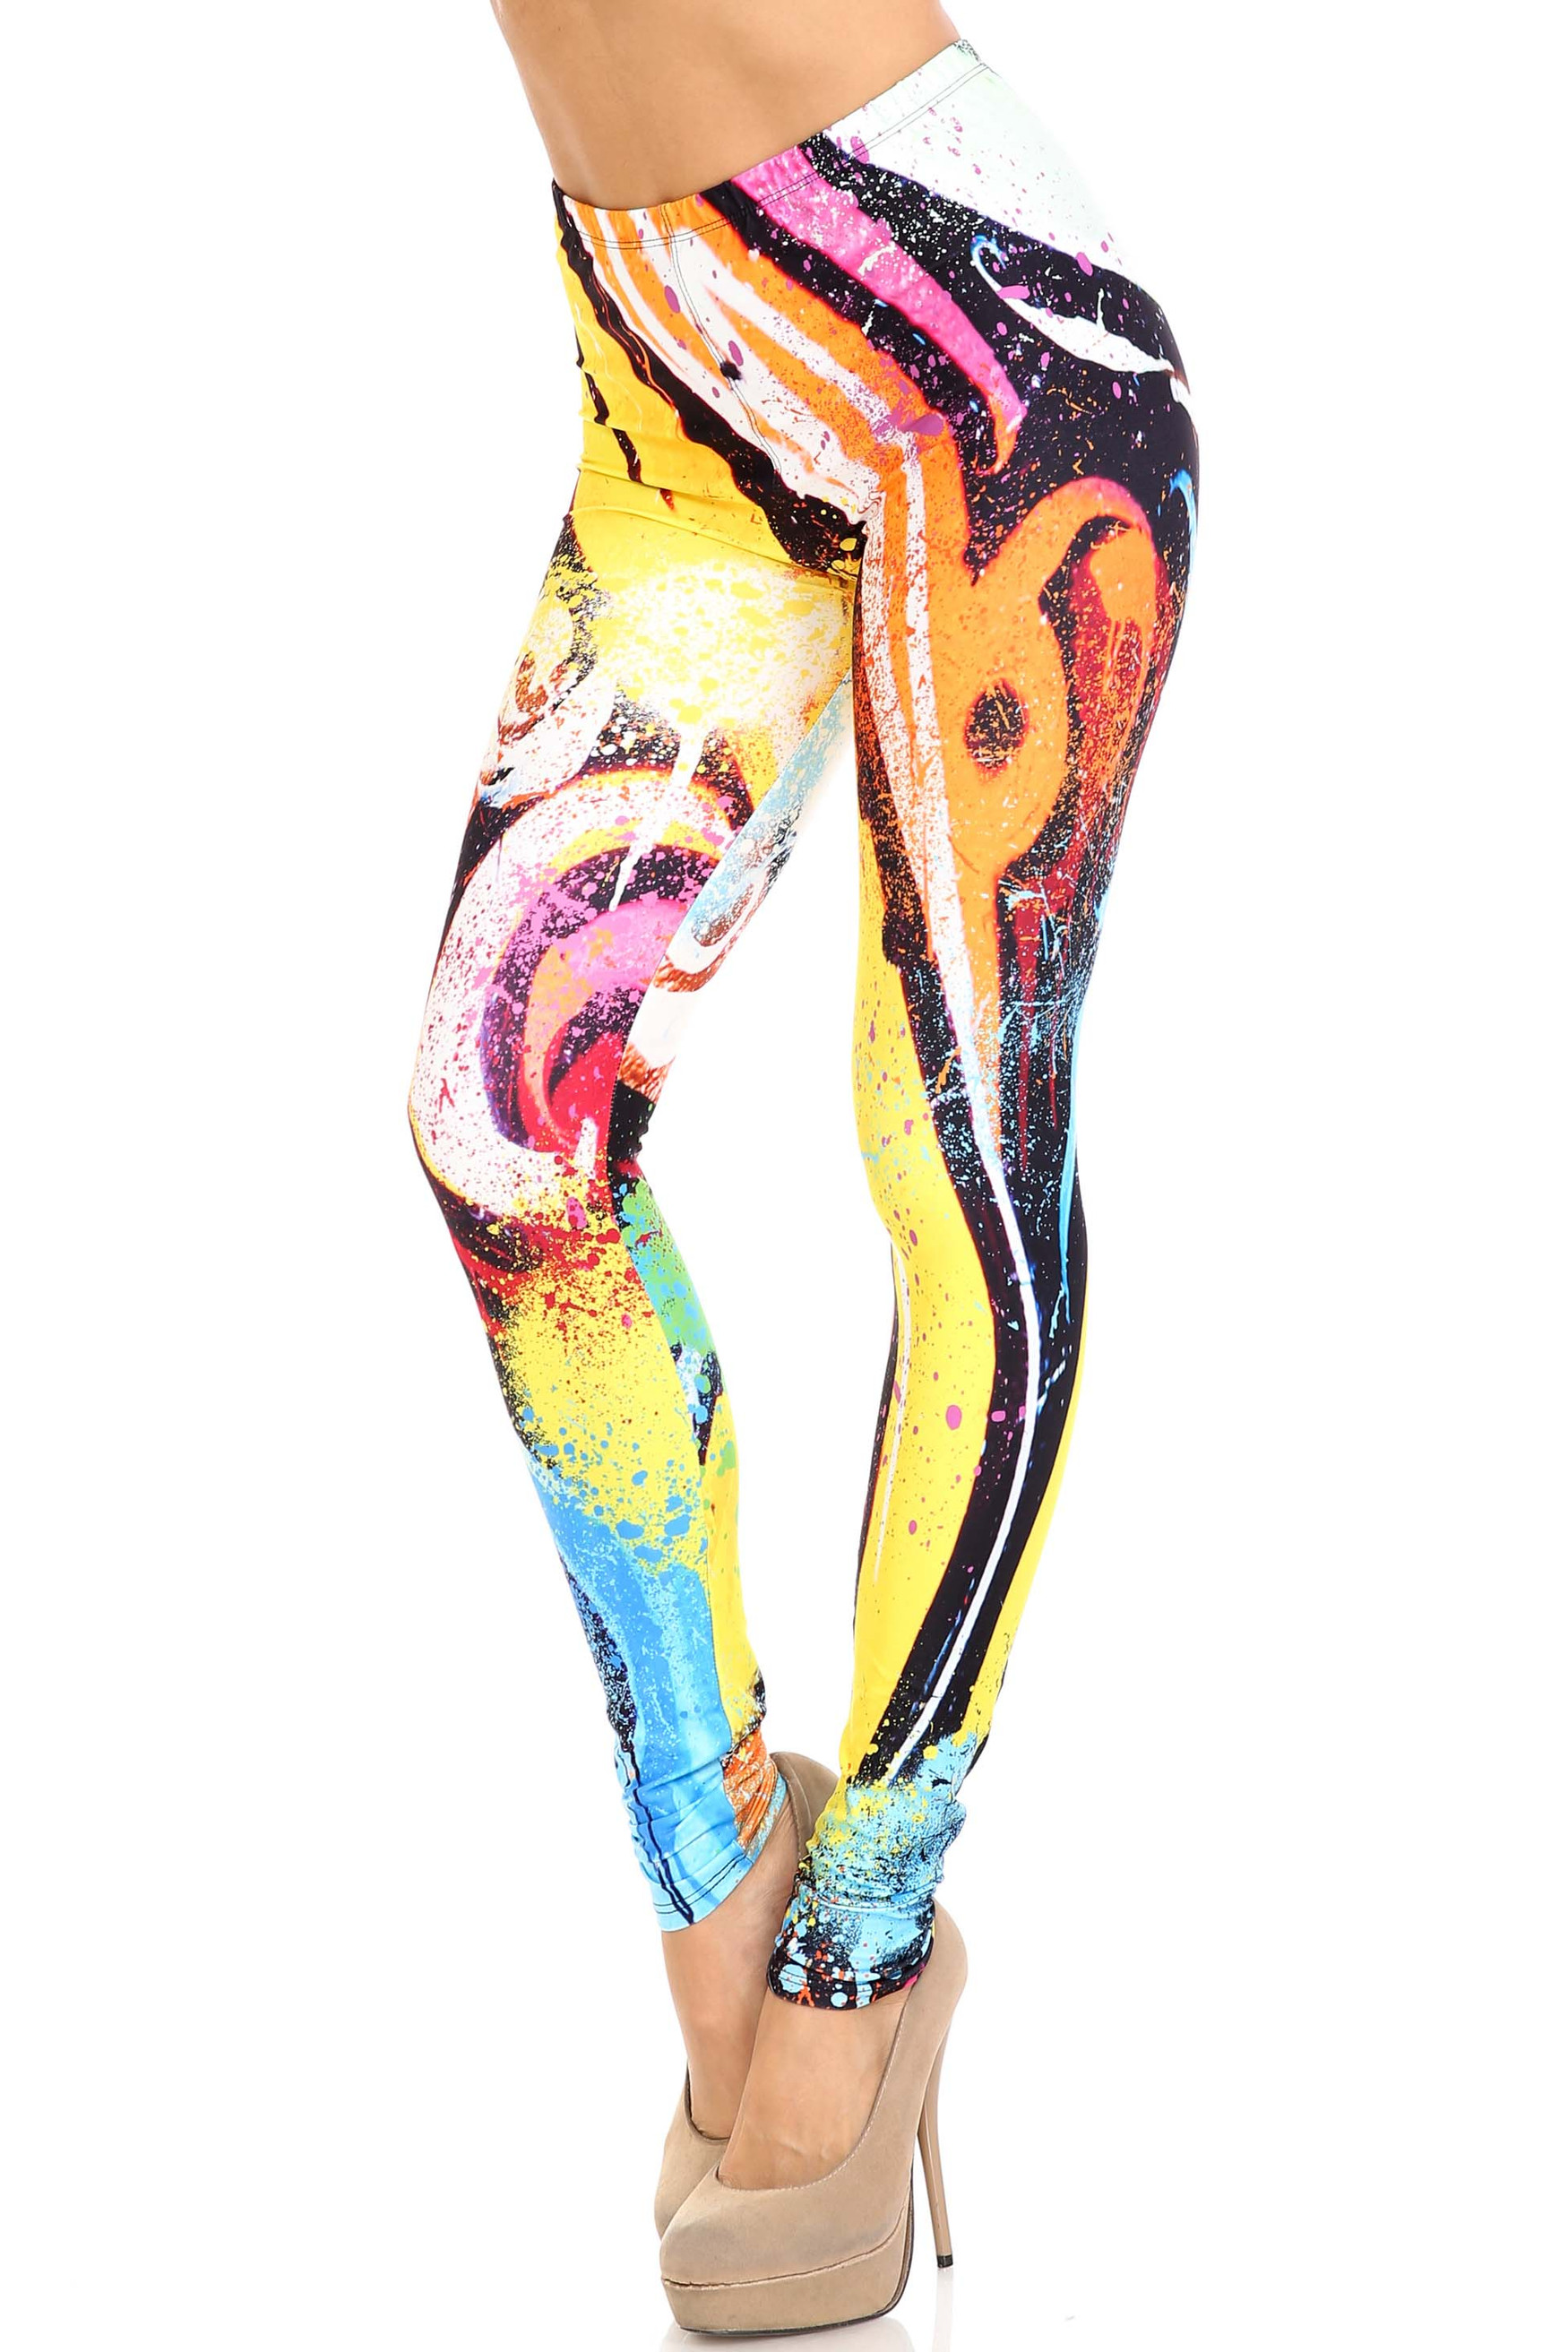 Creamy Soft Colorful Paint Strokes Extra Plus Size Leggings - 3X-5X - USA Fashion™